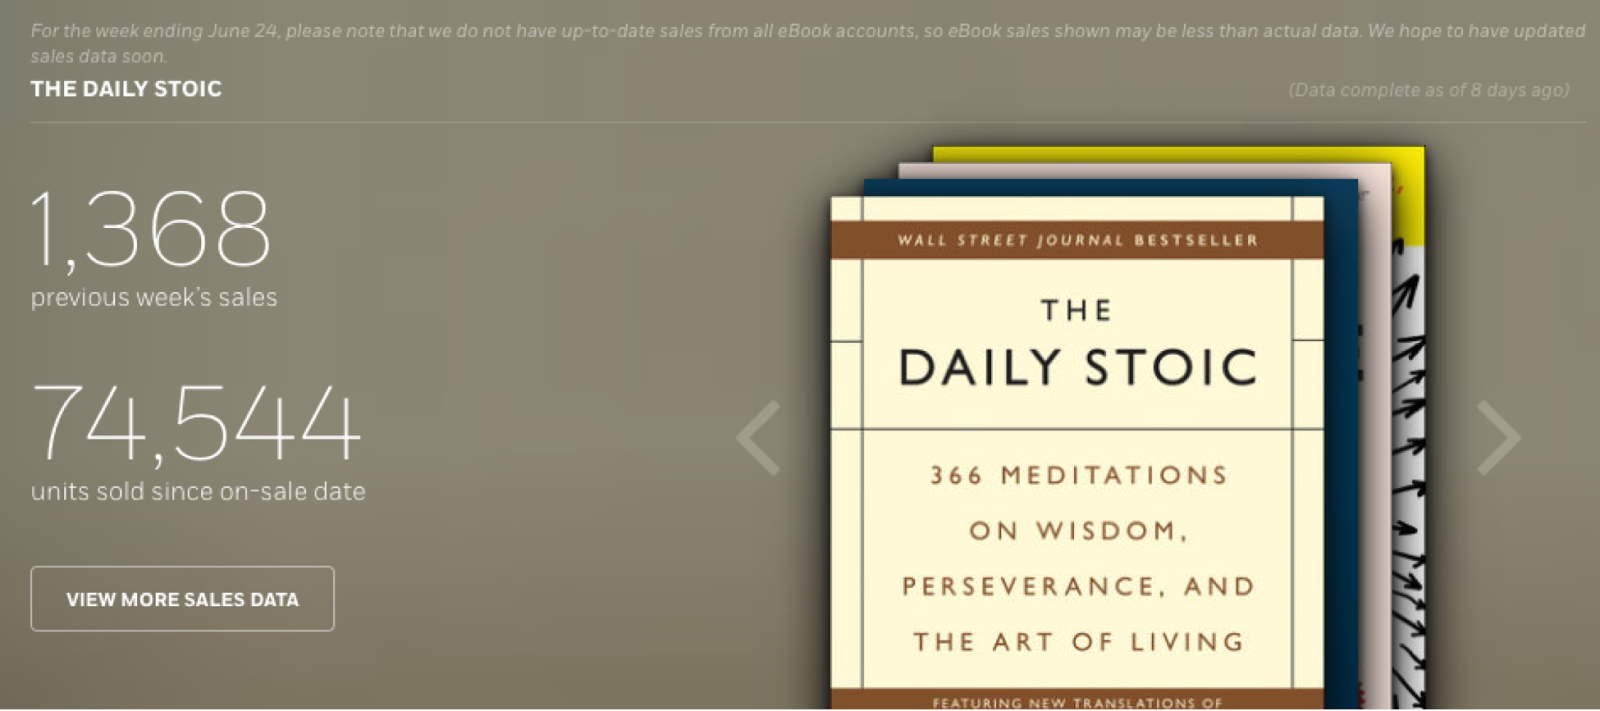 The sales of The Daily Stoic